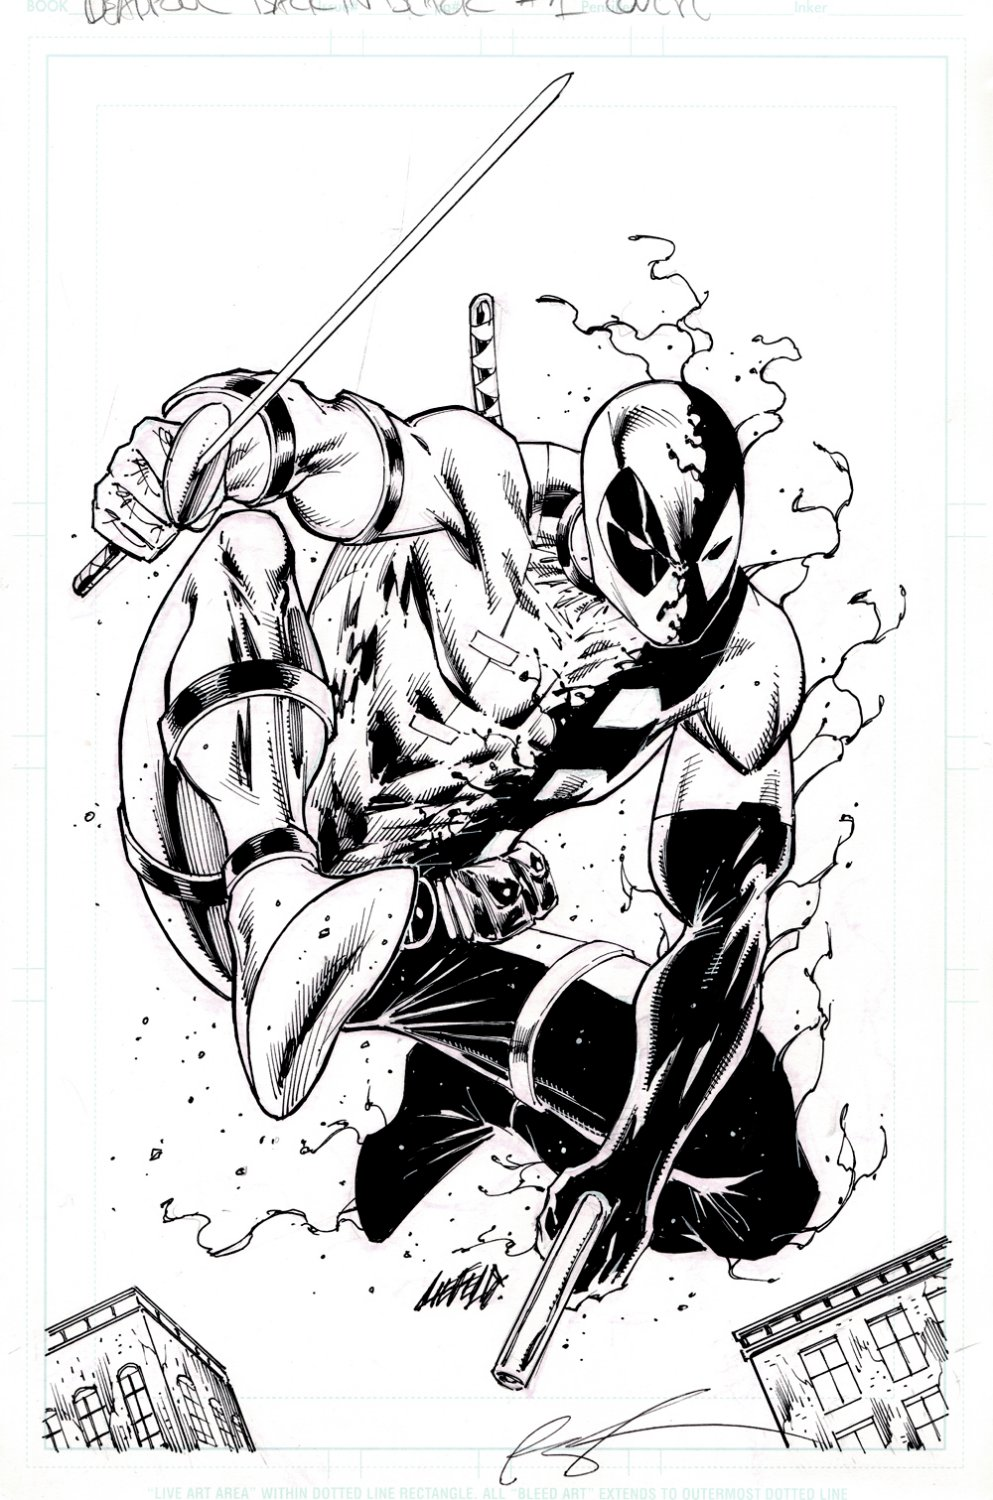 Deadpool: Back in Black #1 Cover (AWESOME 1ST ISSUE COVER PENCILED & INKED BY DEADPOOL'S CREATOR!)